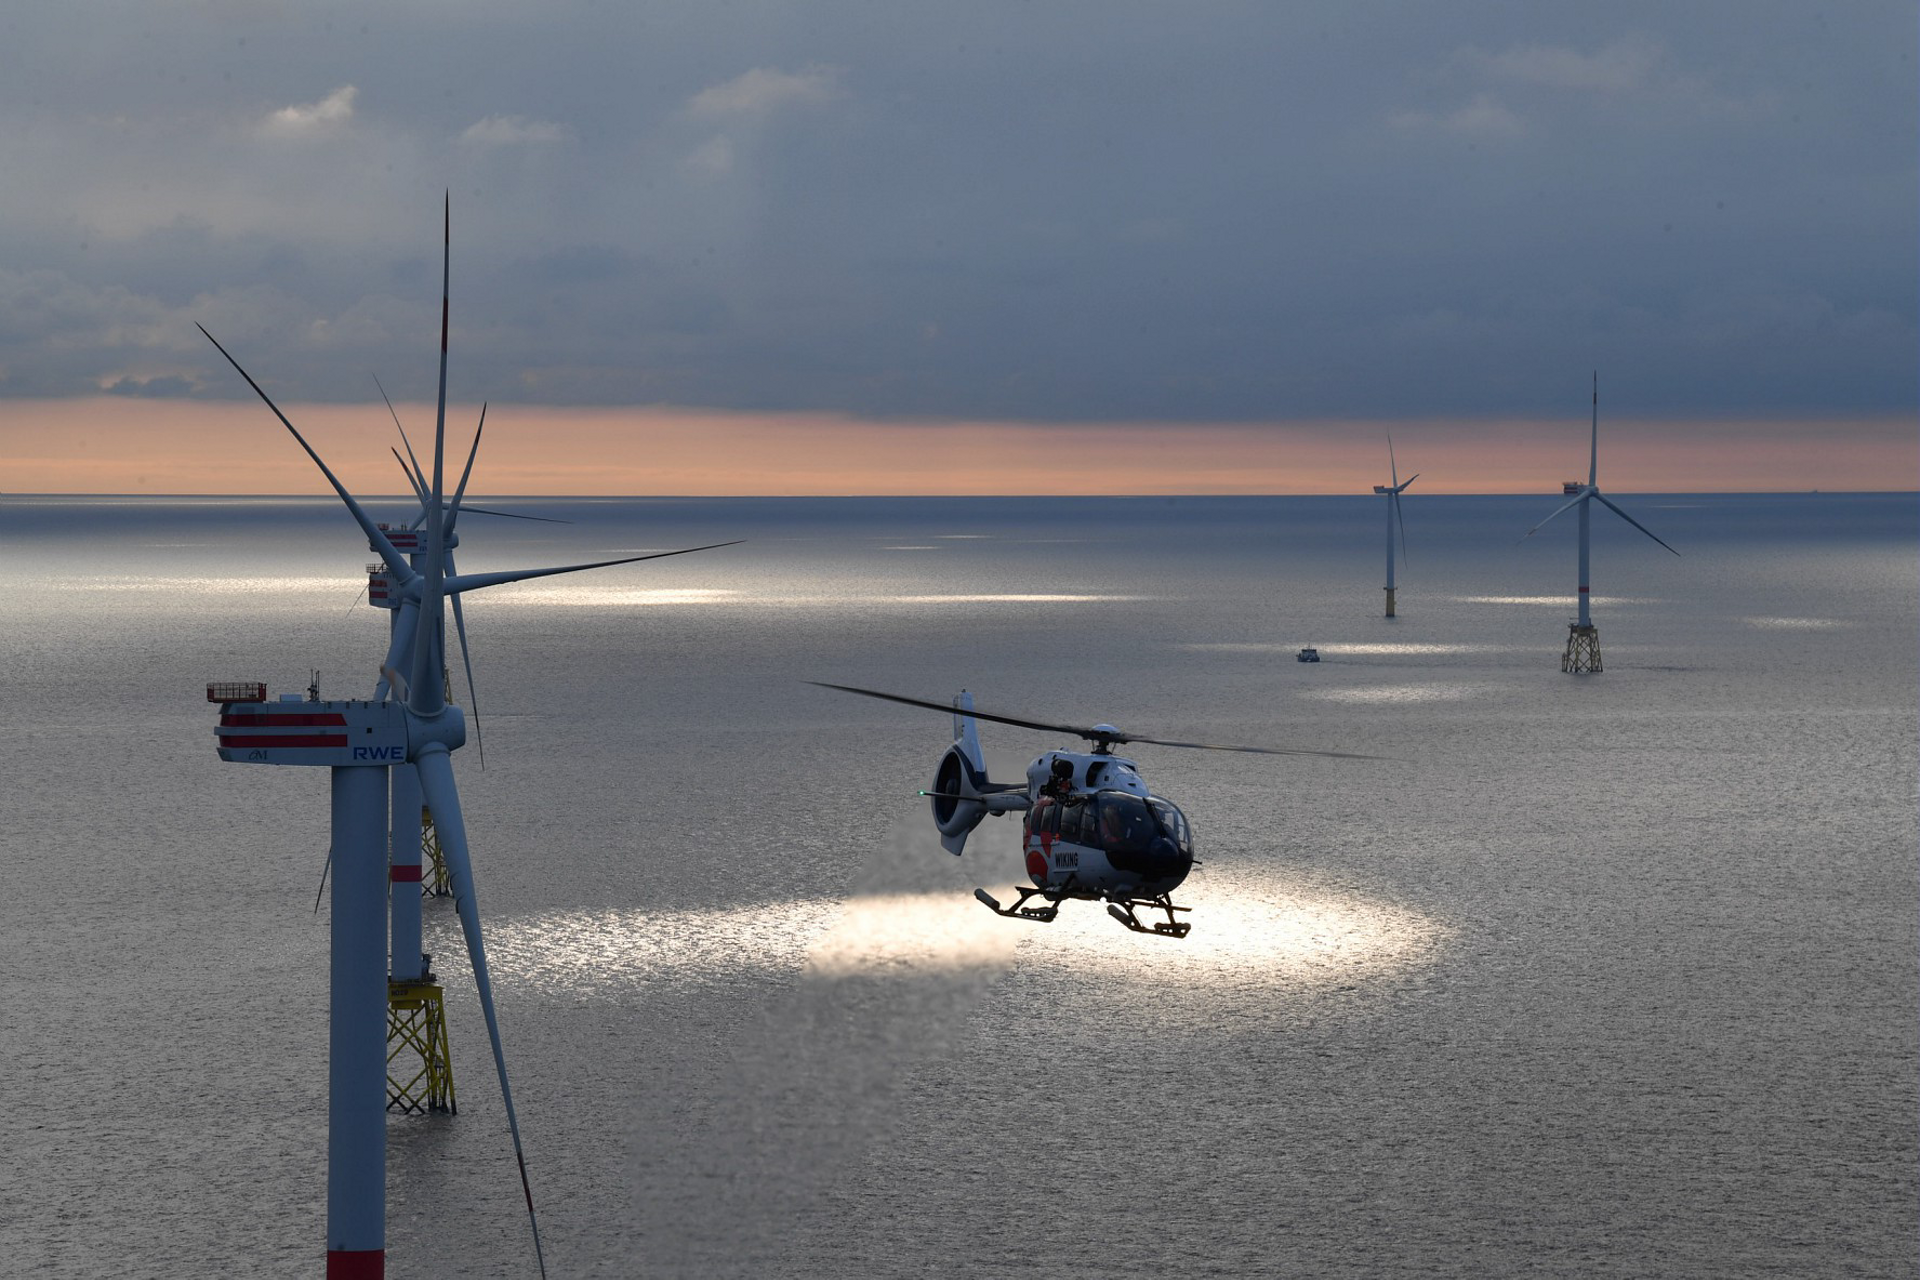 Wiking Helicopter Services just took delivery of a new H145, bringing its fleet to four H145s used in sea pilot transfers,  and technician wind farm transports from their base Wilhelmshaven, Emden, Wick (UK) and soon from Beccles (UK), Eemshaven and Den Helder (NL).